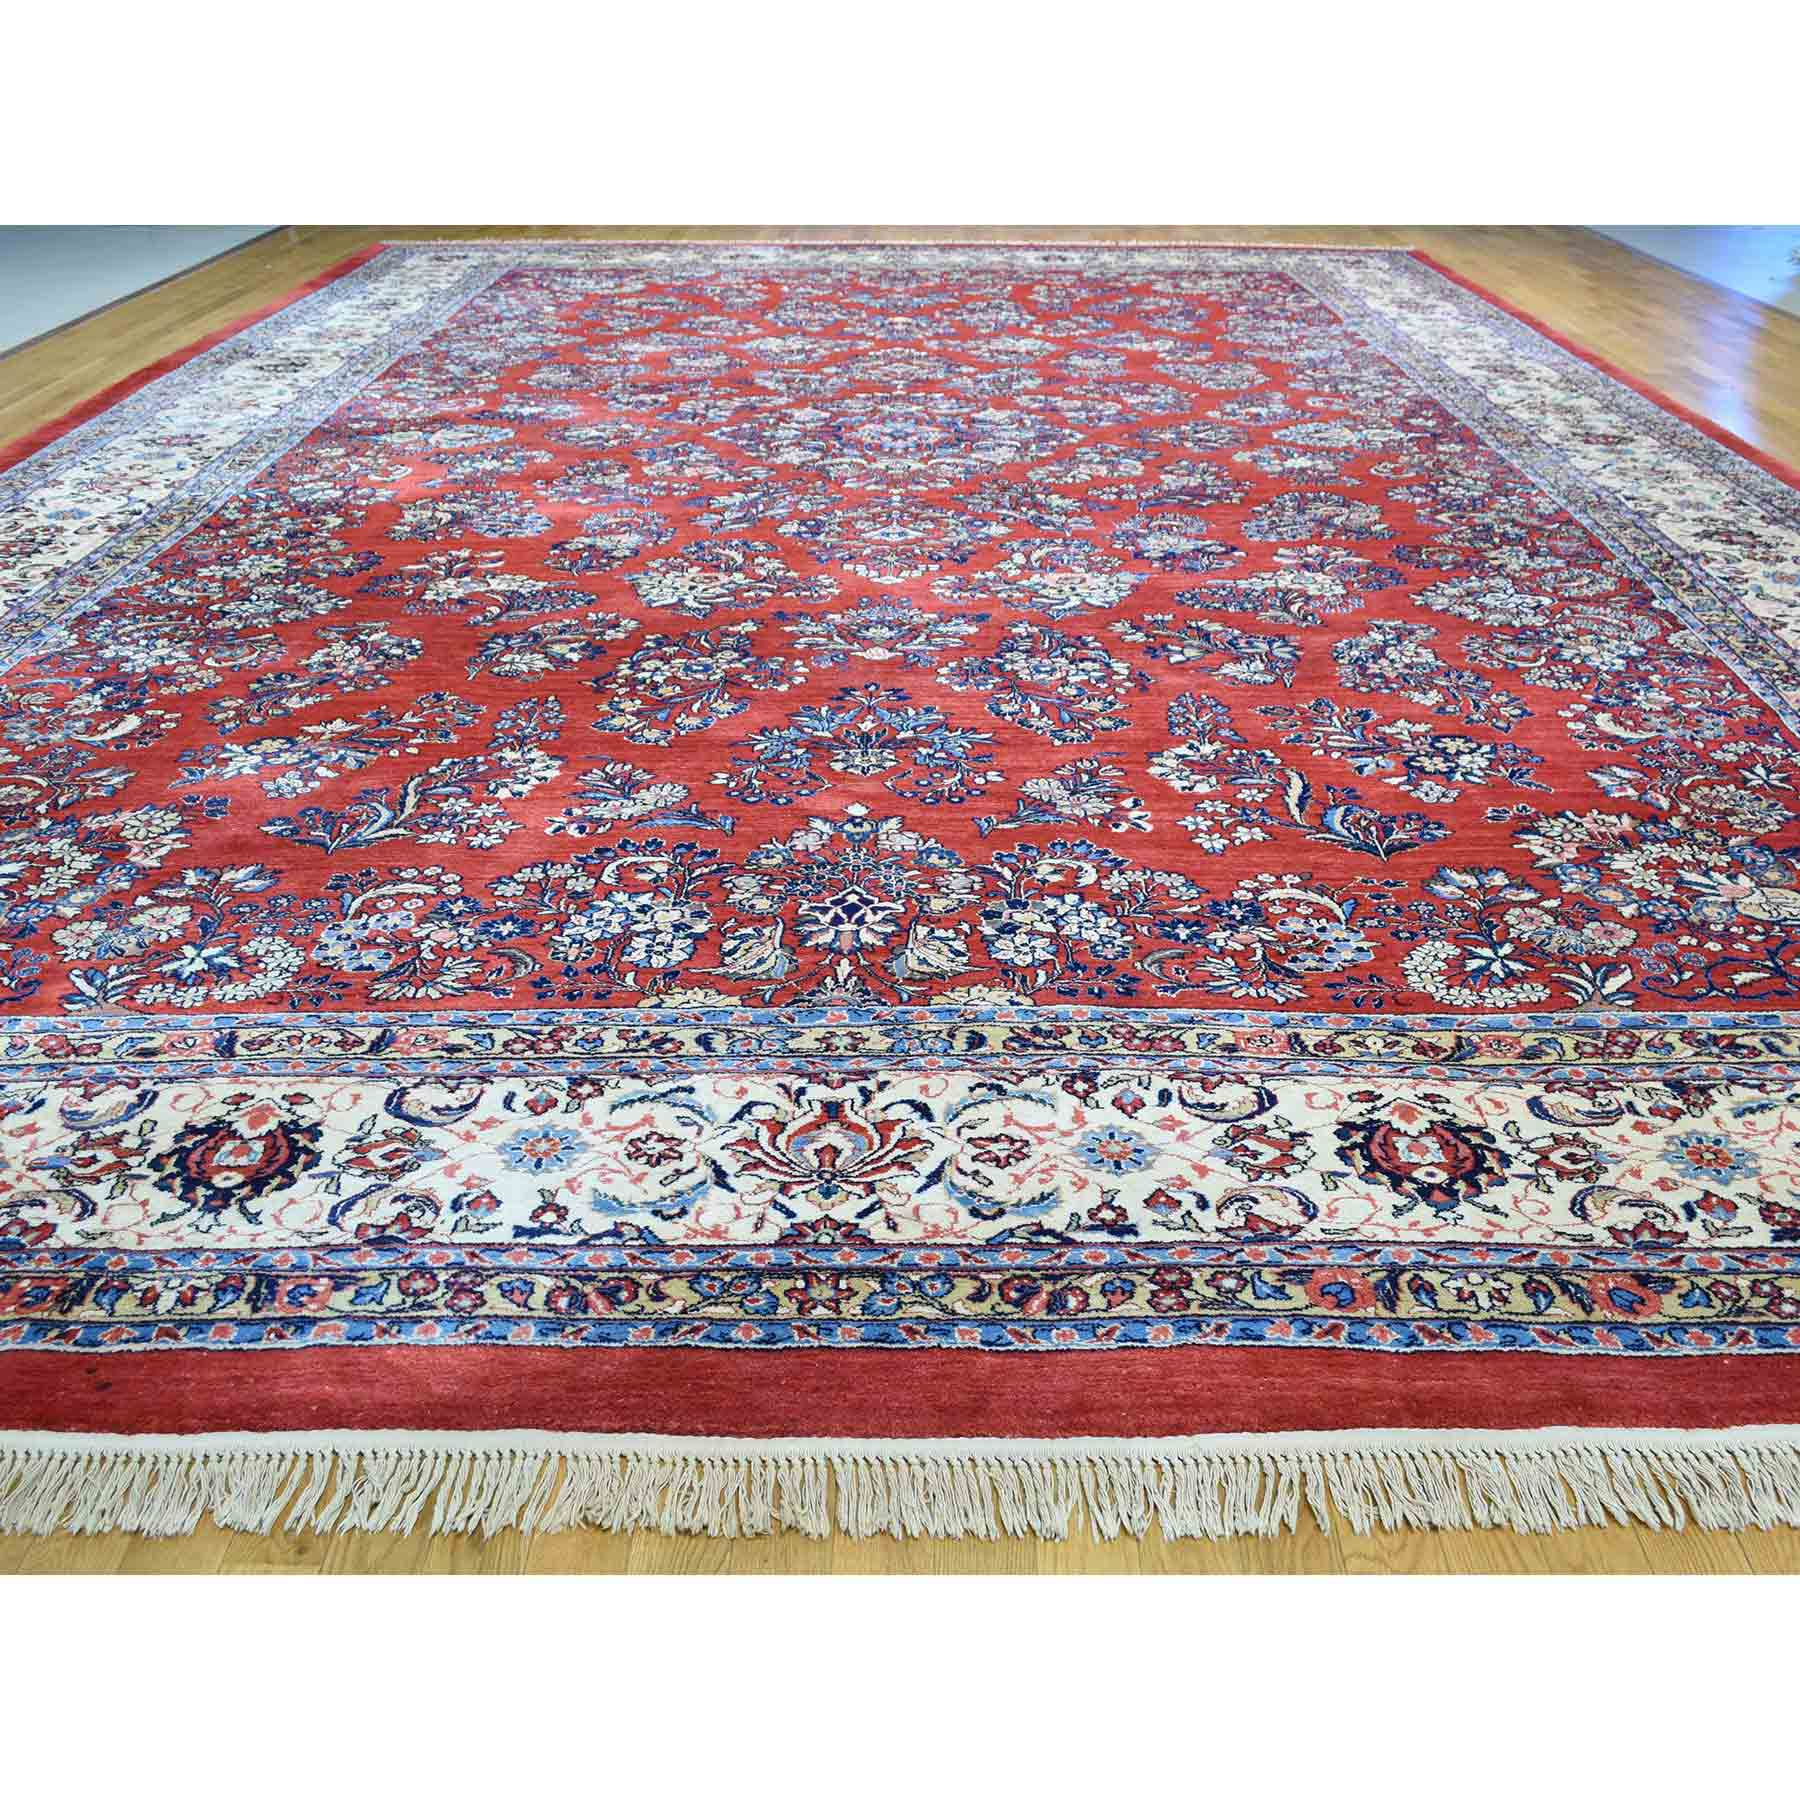 Antique-Hand-Knotted-Rug-162380